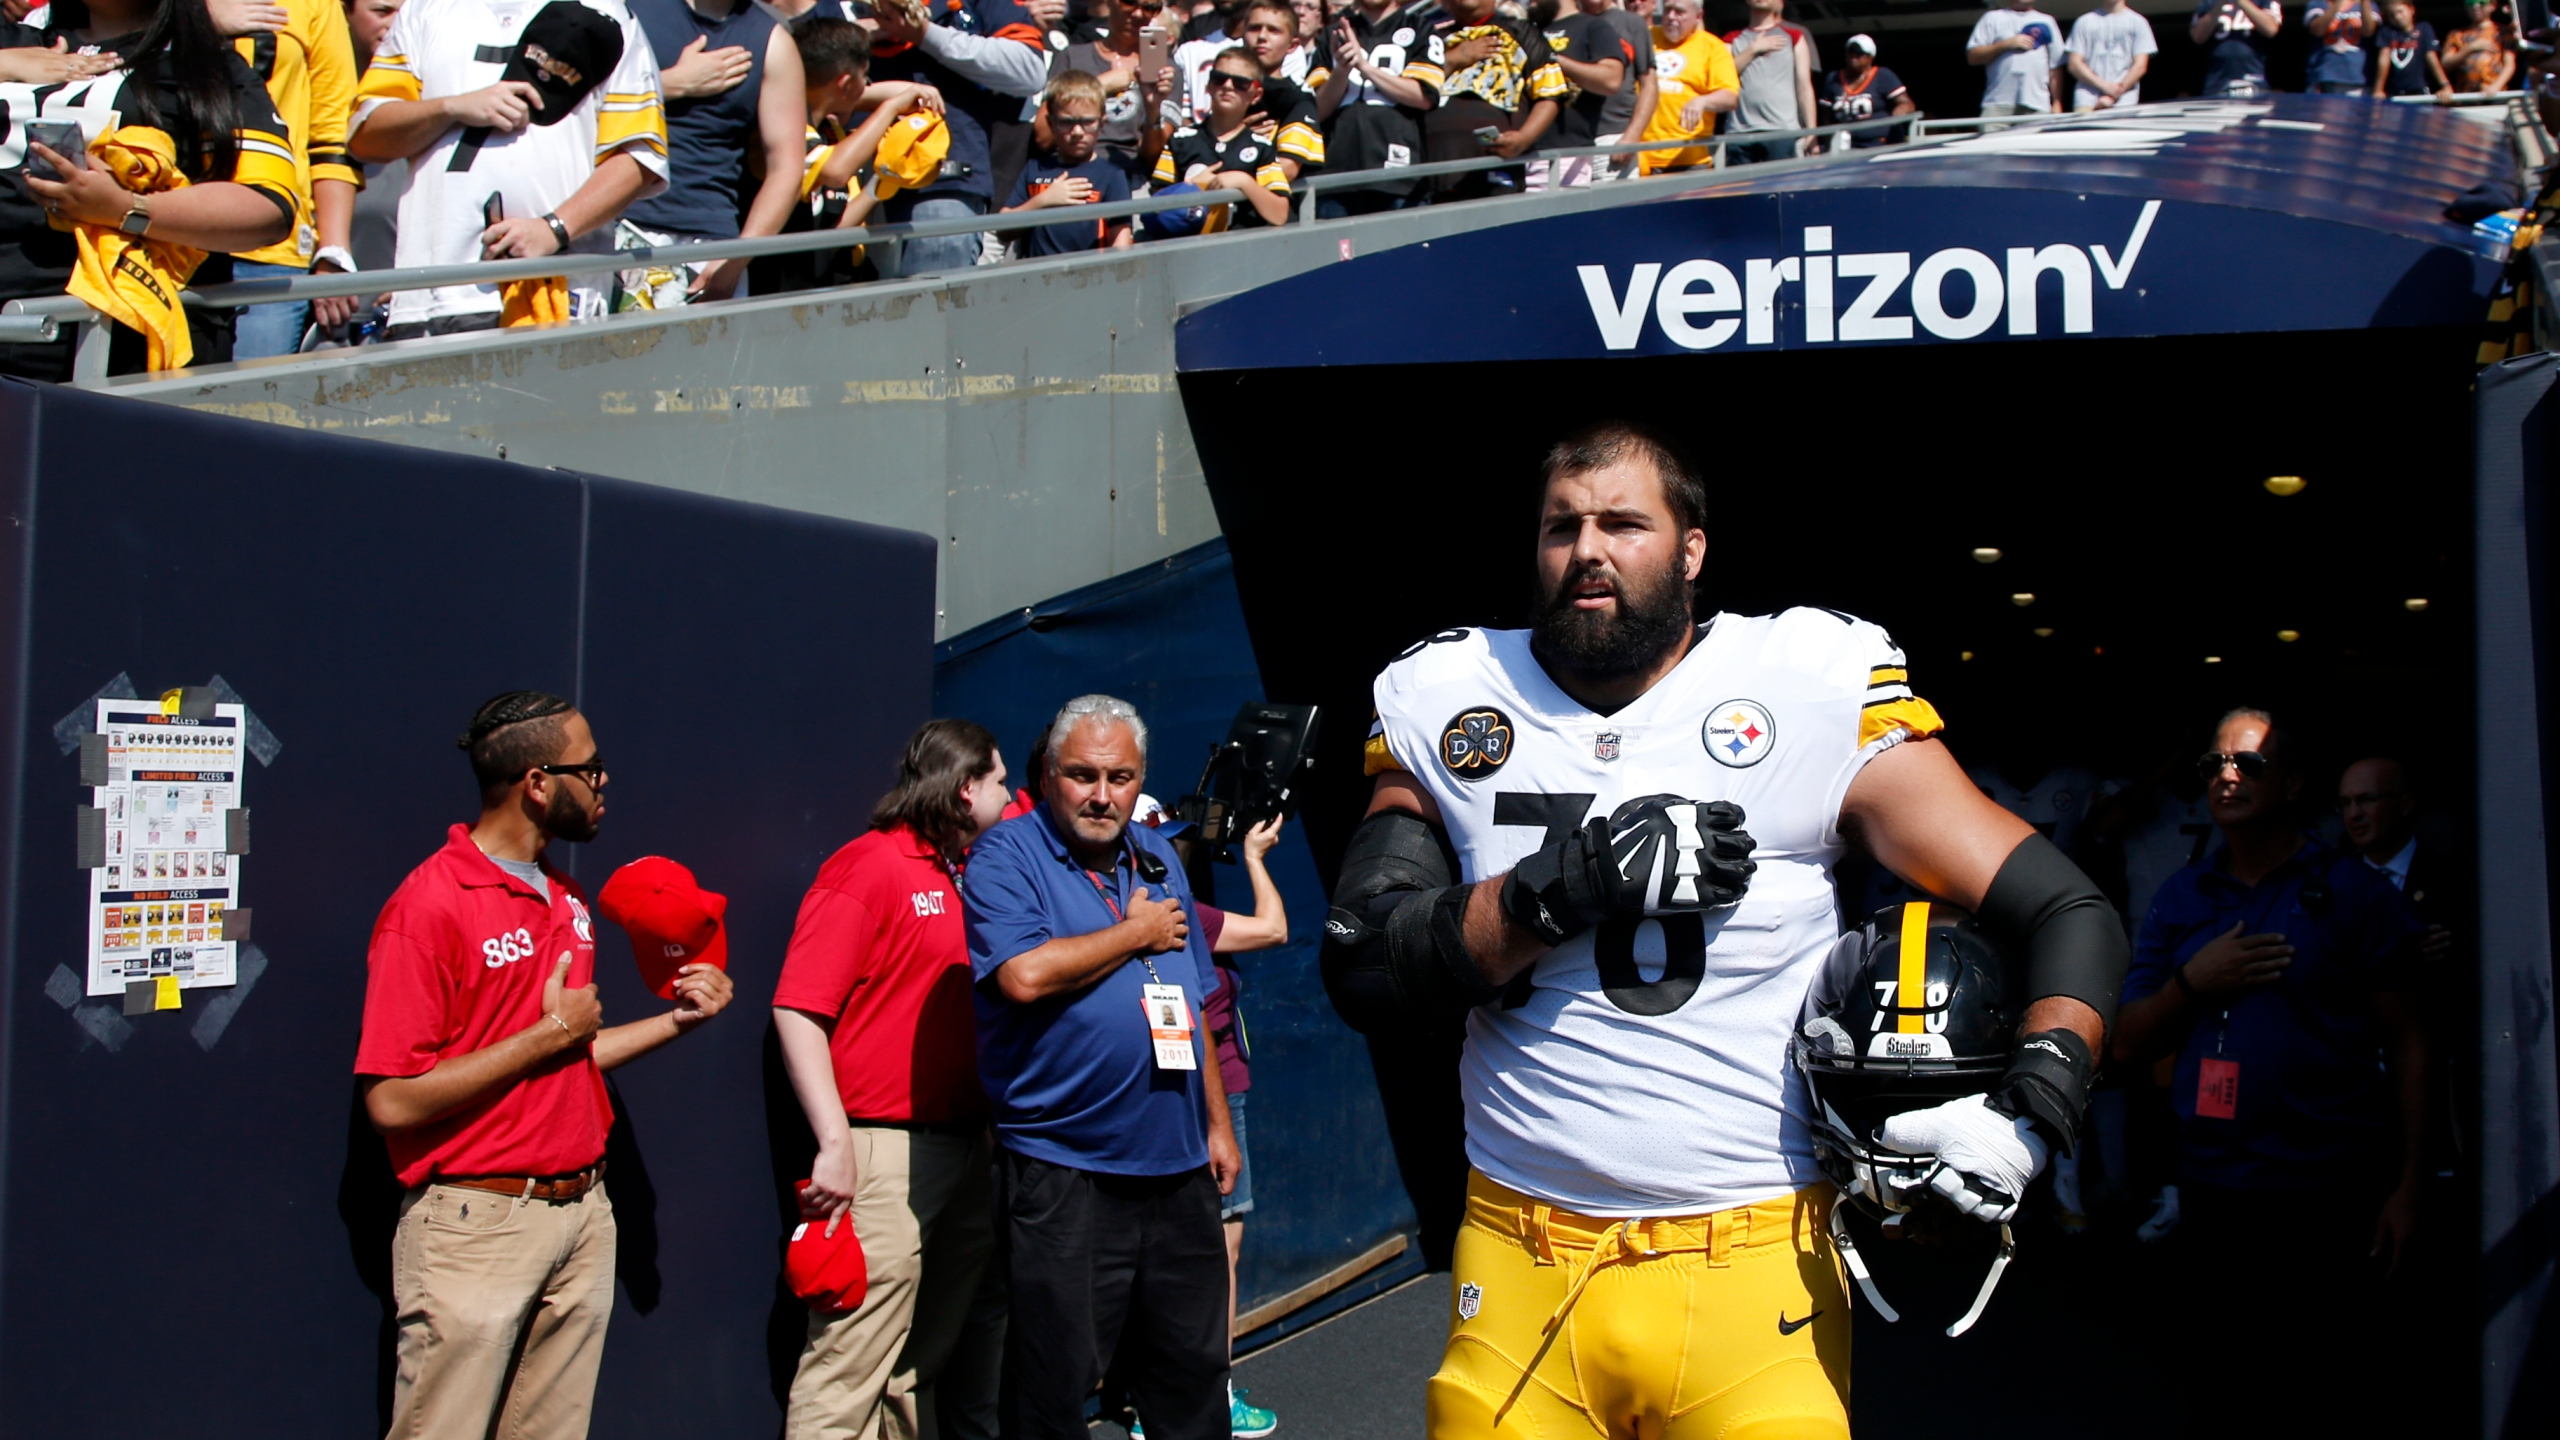 Alejandro Villanueva of the Pittsburgh Steelers stands by himself in the tunnel for the national anthem prior to the game against the Chicago Bears at Soldier Field on Sept. 24, 2017. (Credit: Joe Robbins/Getty Images)